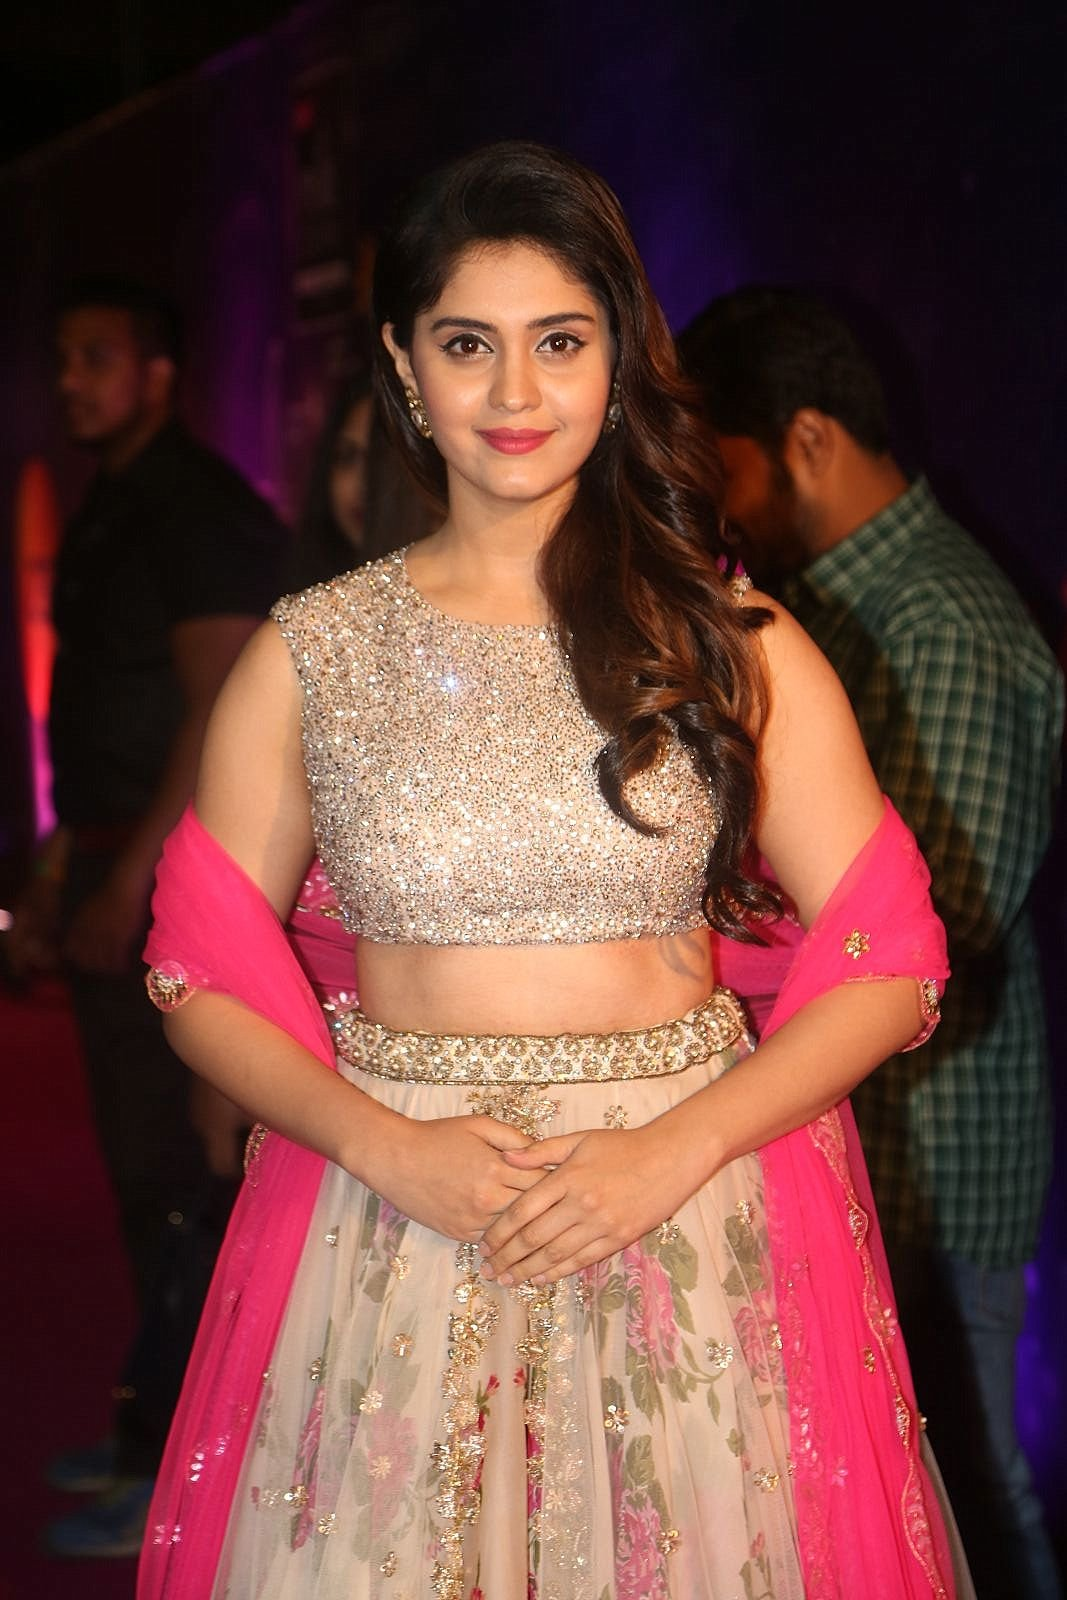 indian actress hd wallpapers: actress surabhi hot hd wallpapers and